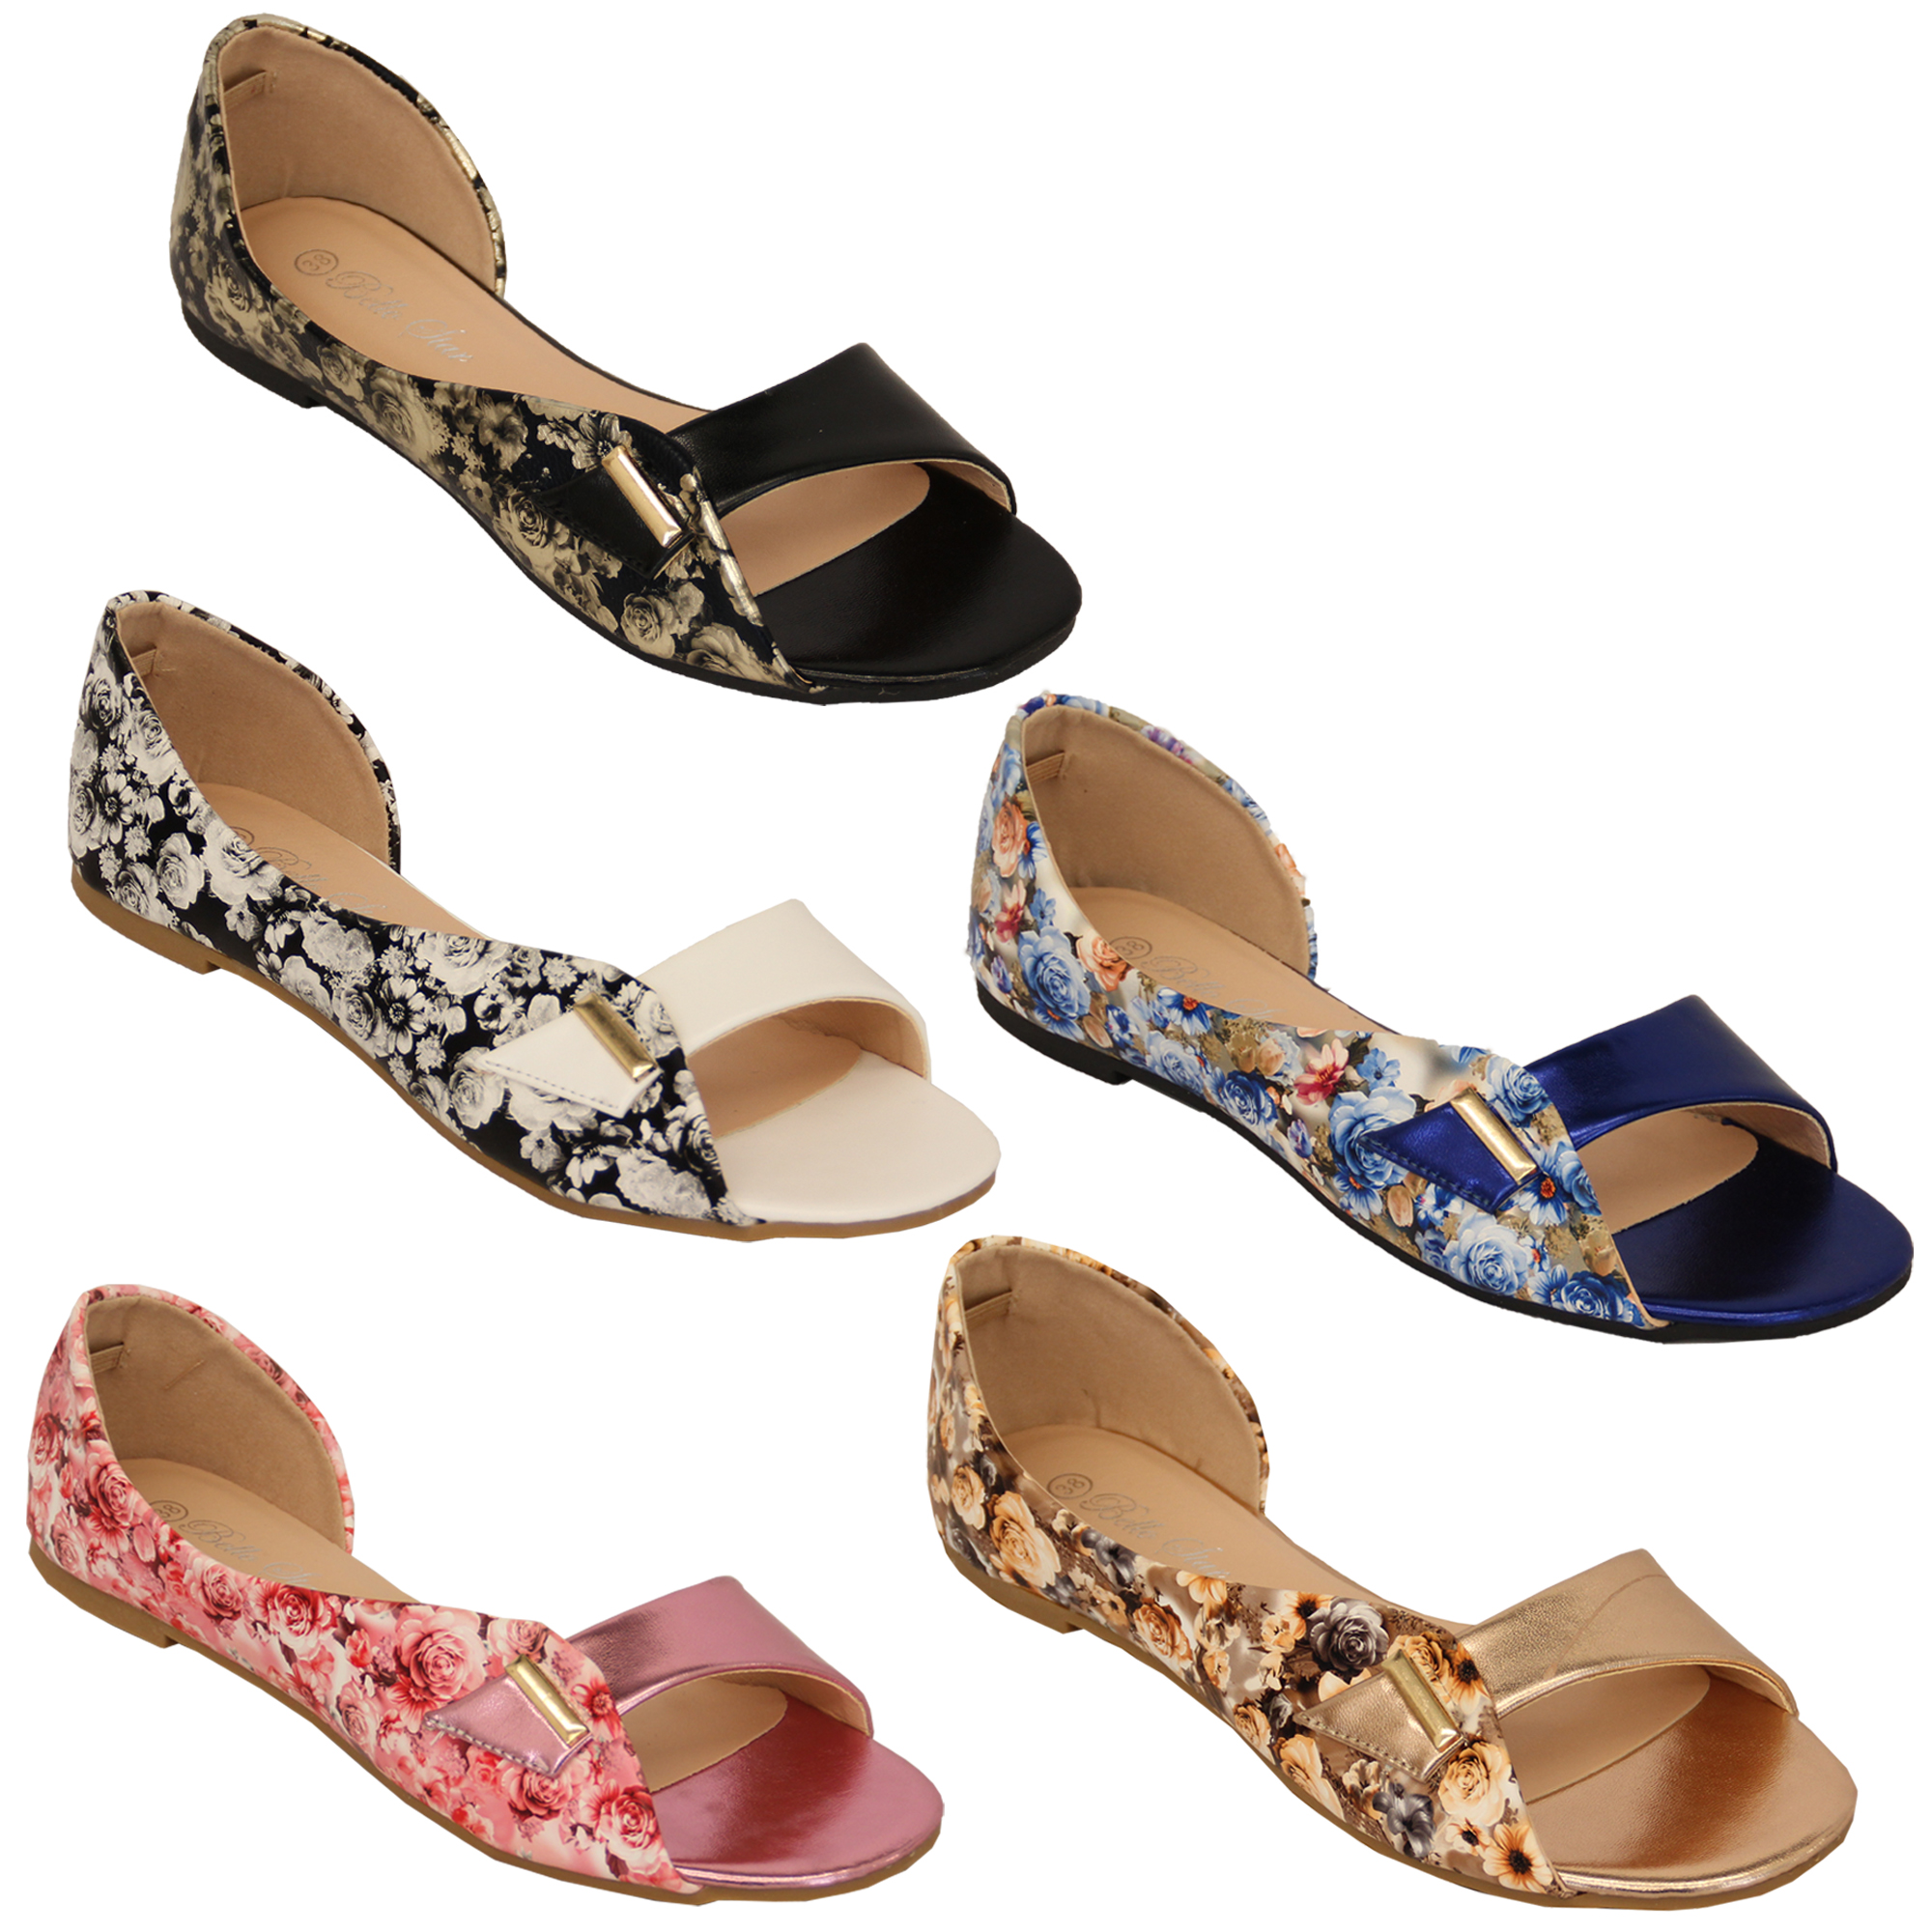 dfee6ed5e Details about ladies flat sandals floral print womens slip on open toe  bella star casual shoes